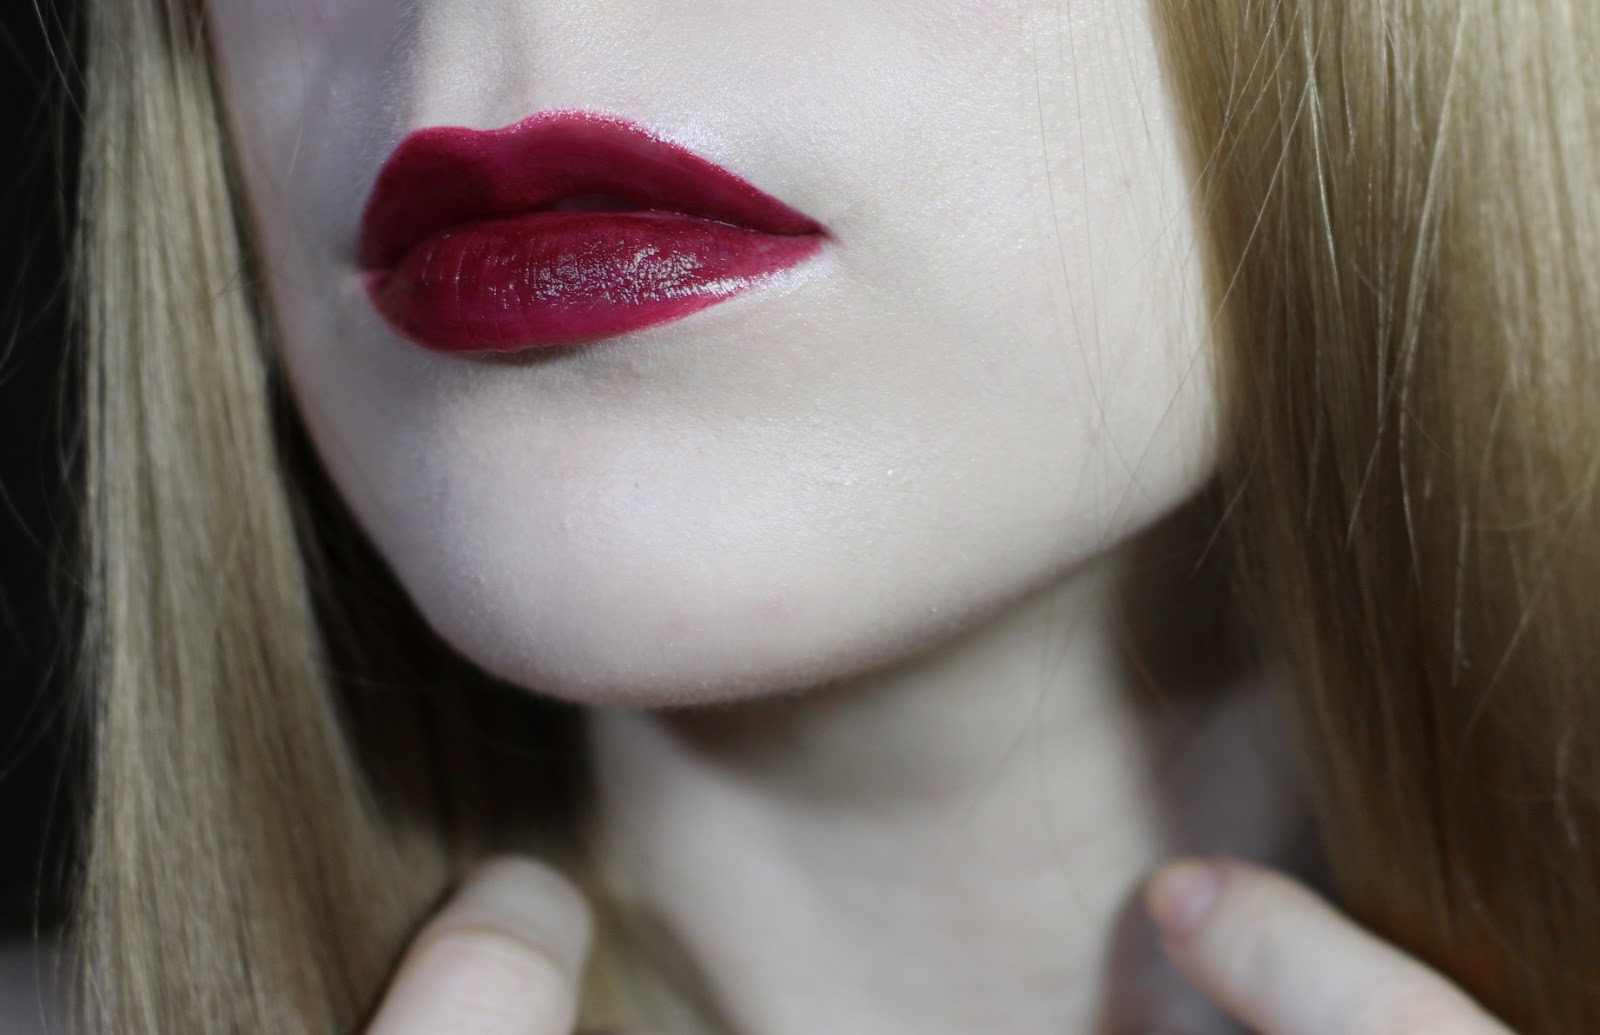 blonde girl with dark red lipstick